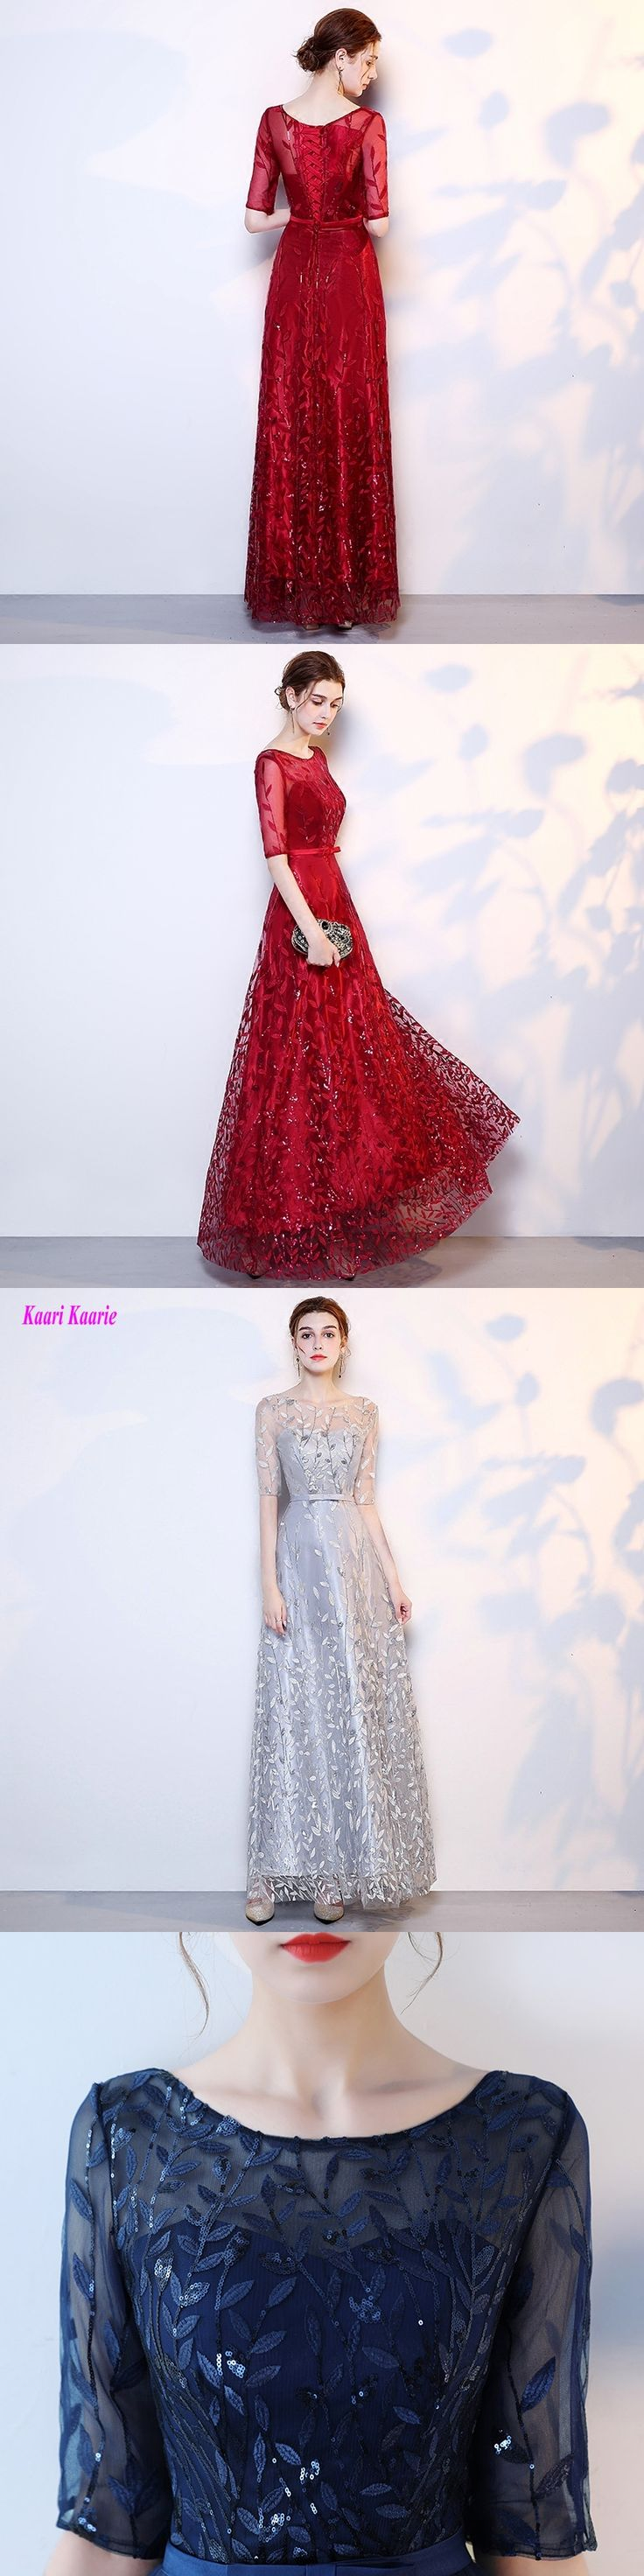 Luxury Silver Evening Gown 2017 New Sexy O-Neck Burgundy Lace Half-Sleeve A-Line Formal Evening Dresses Long Evening Party Dress